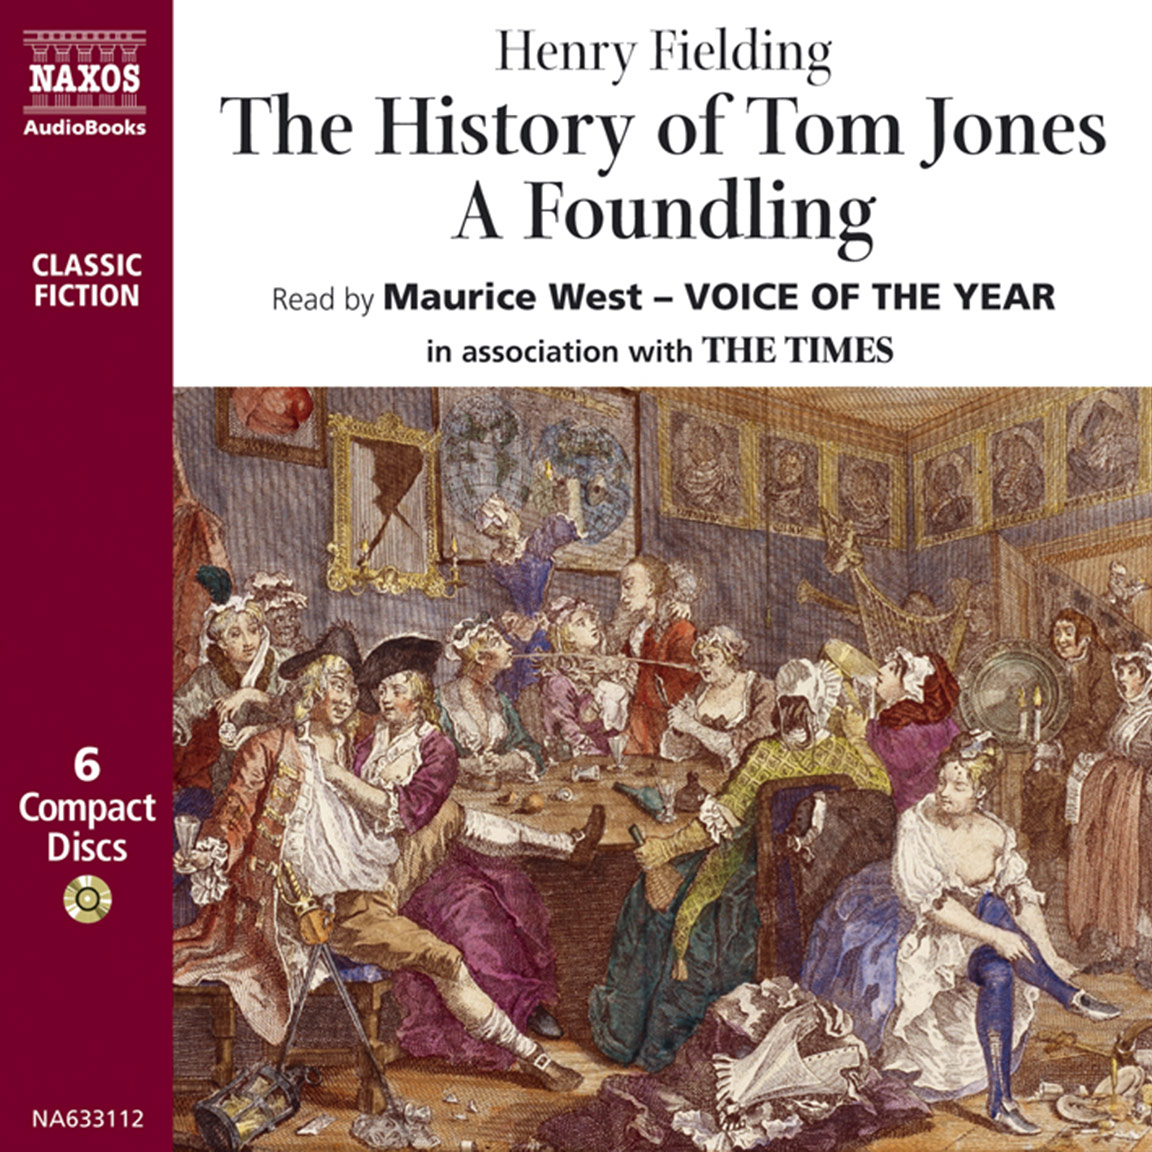 an introduction to the history of tom jones a founding by henry fielding